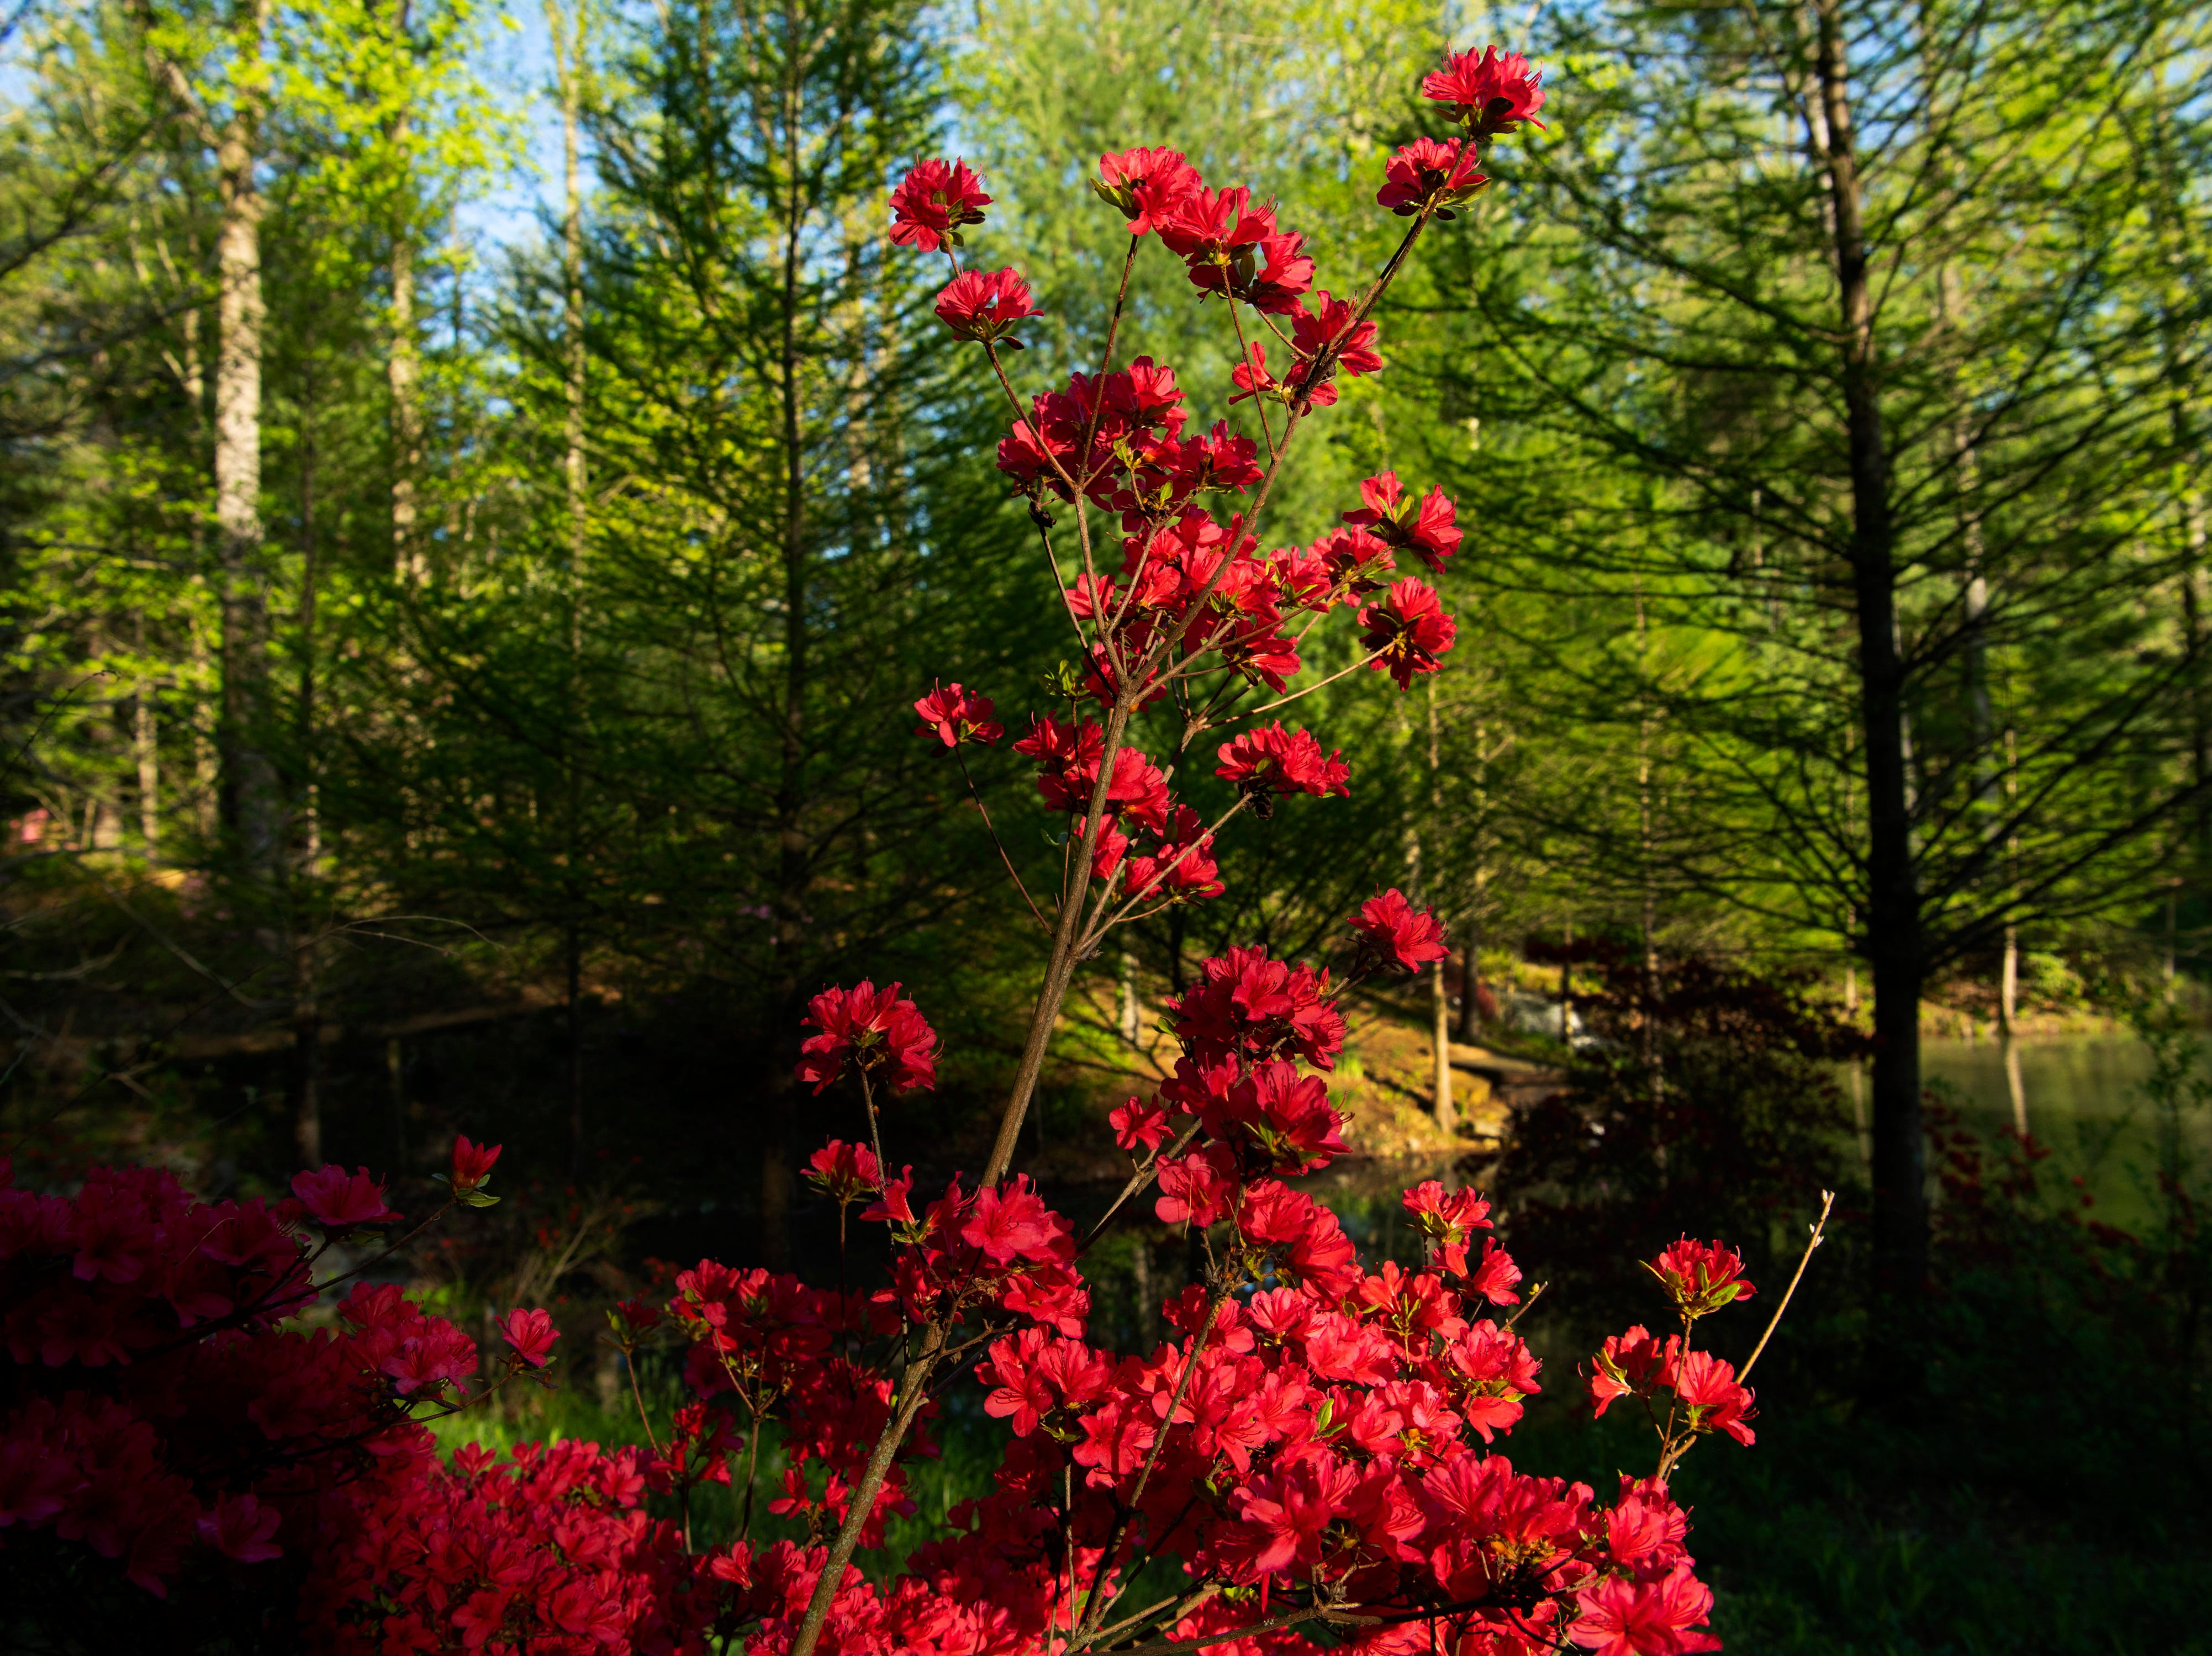 Azaleas dot the landscape at the Azalea Path Arboretum and Botanical Gardens in Pike County, Ind., Friday, April 26, 2019. The facility was started by Beverly Knight in 1979 on 15 acres and has grown to more than 60 acres and has about 500 varieties of the flower.